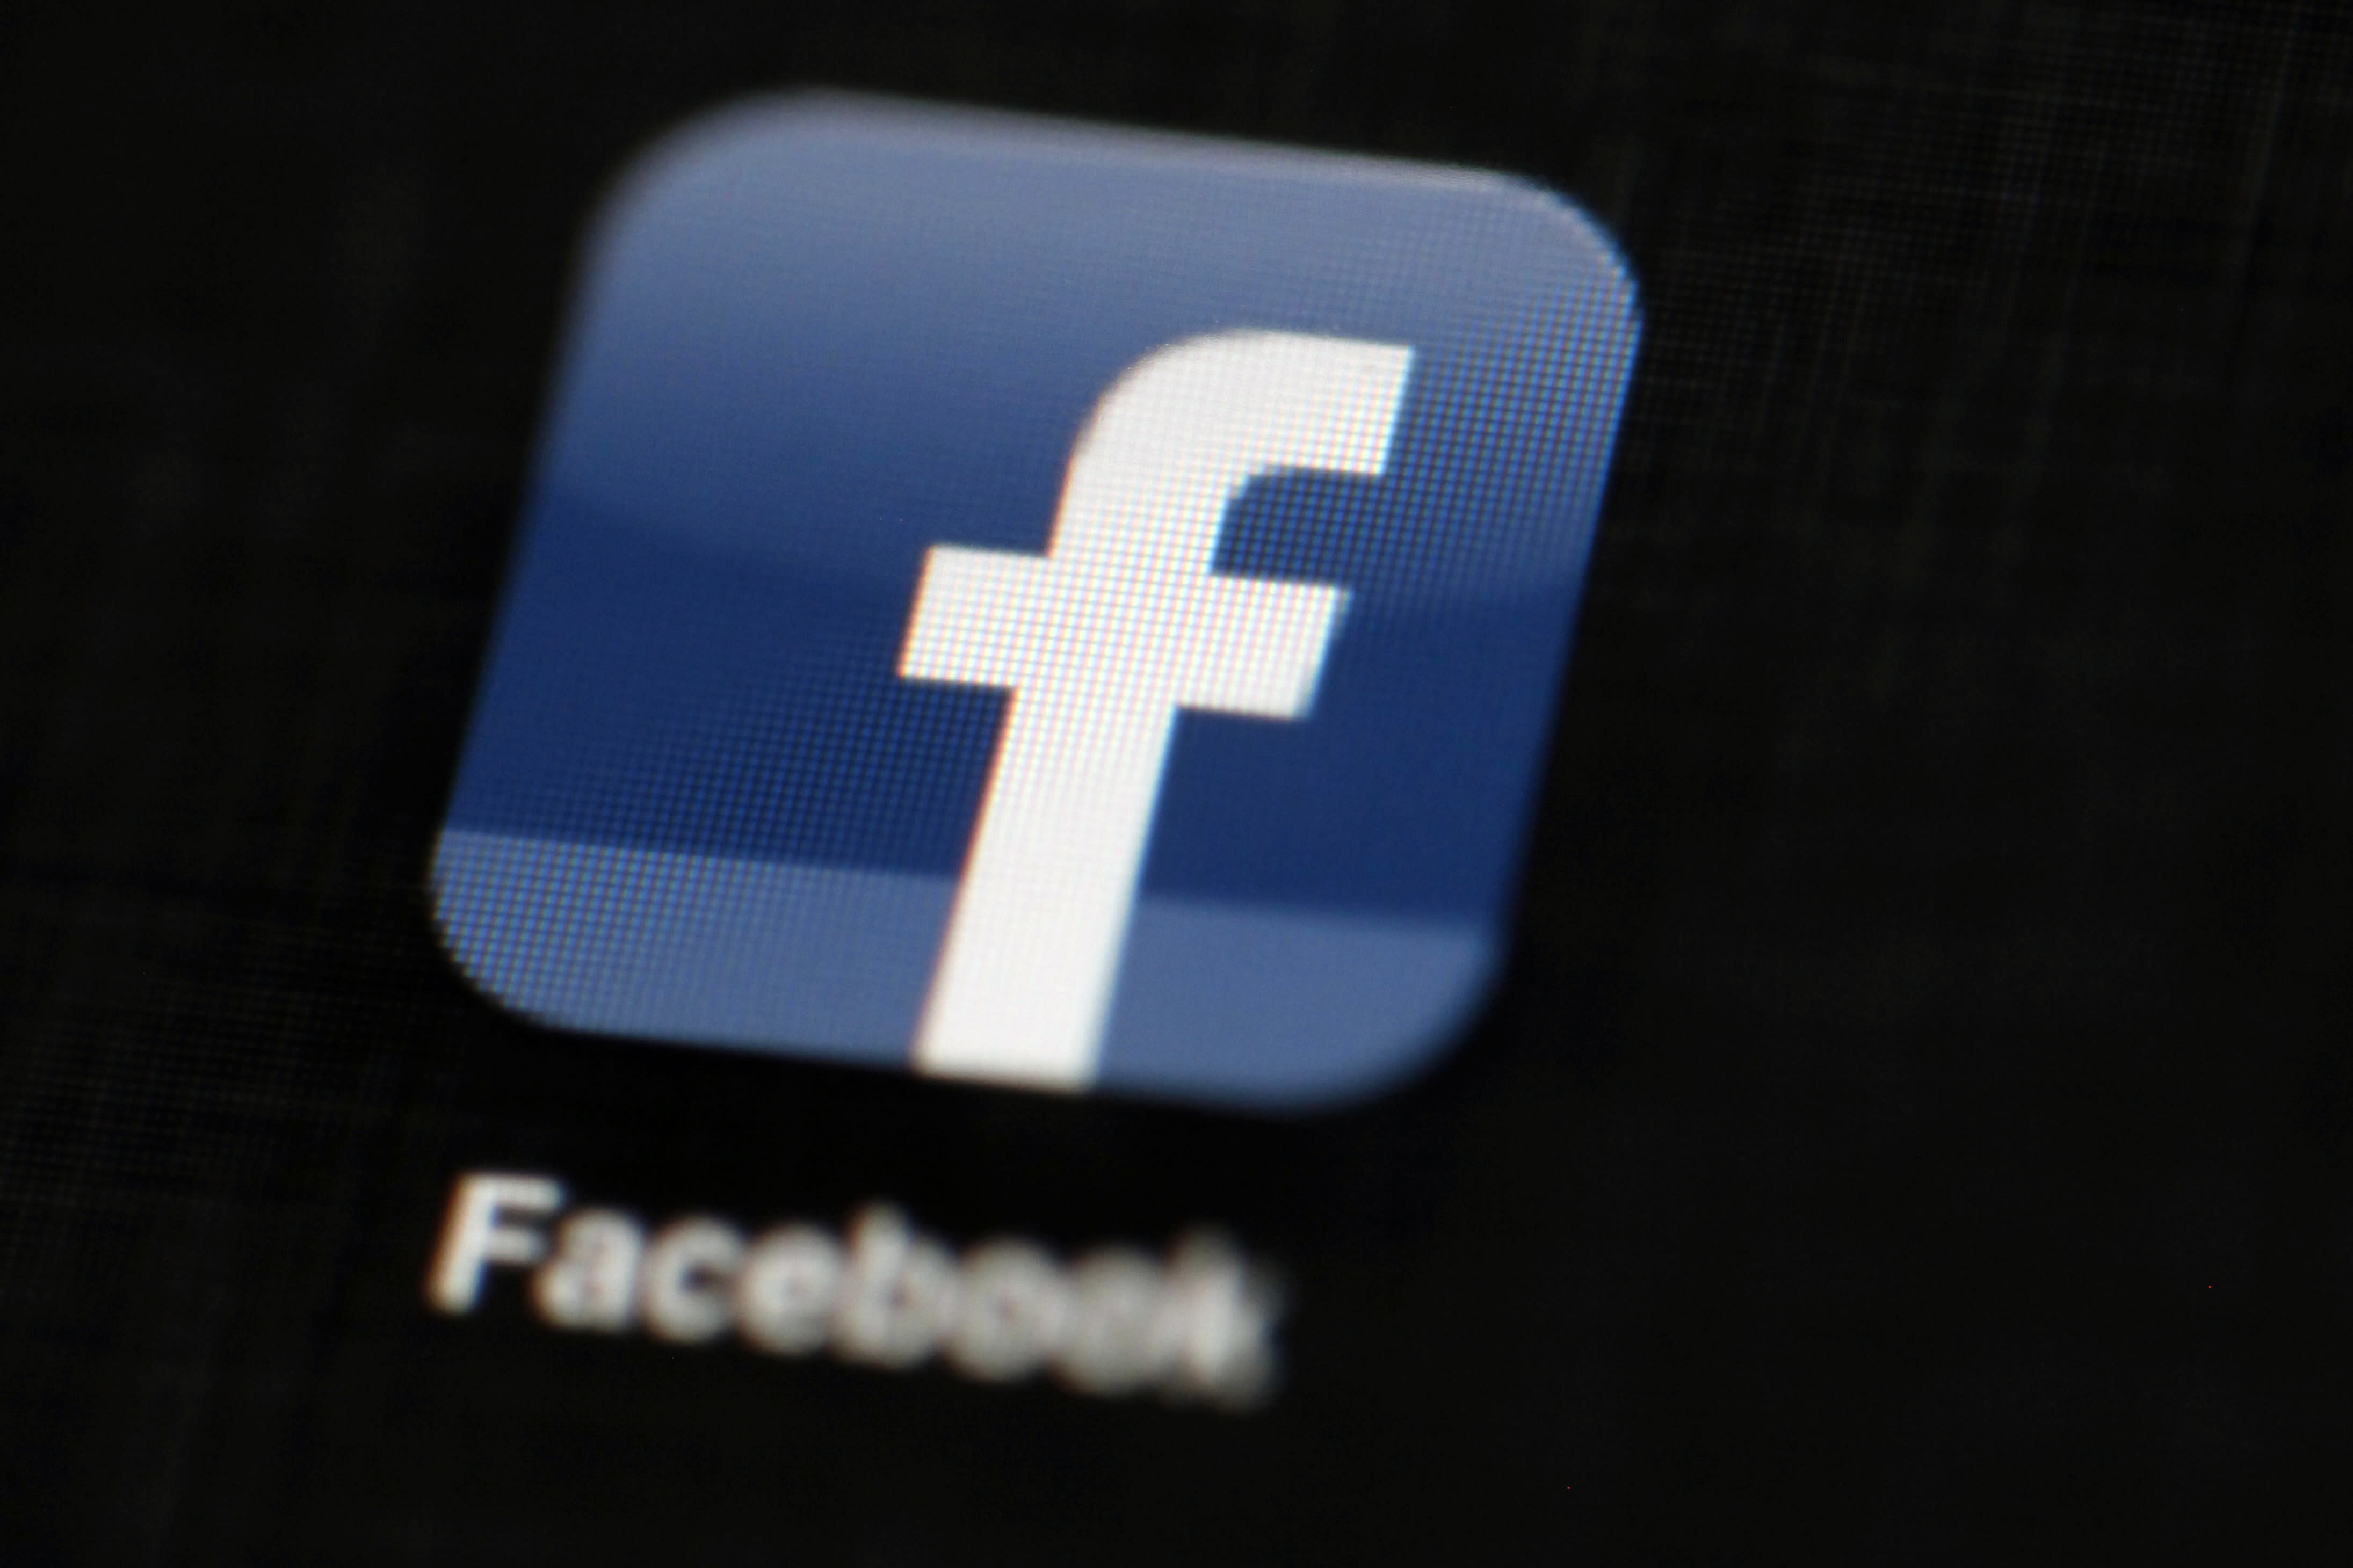 Study illustrates Facebook's growth as campaign news source